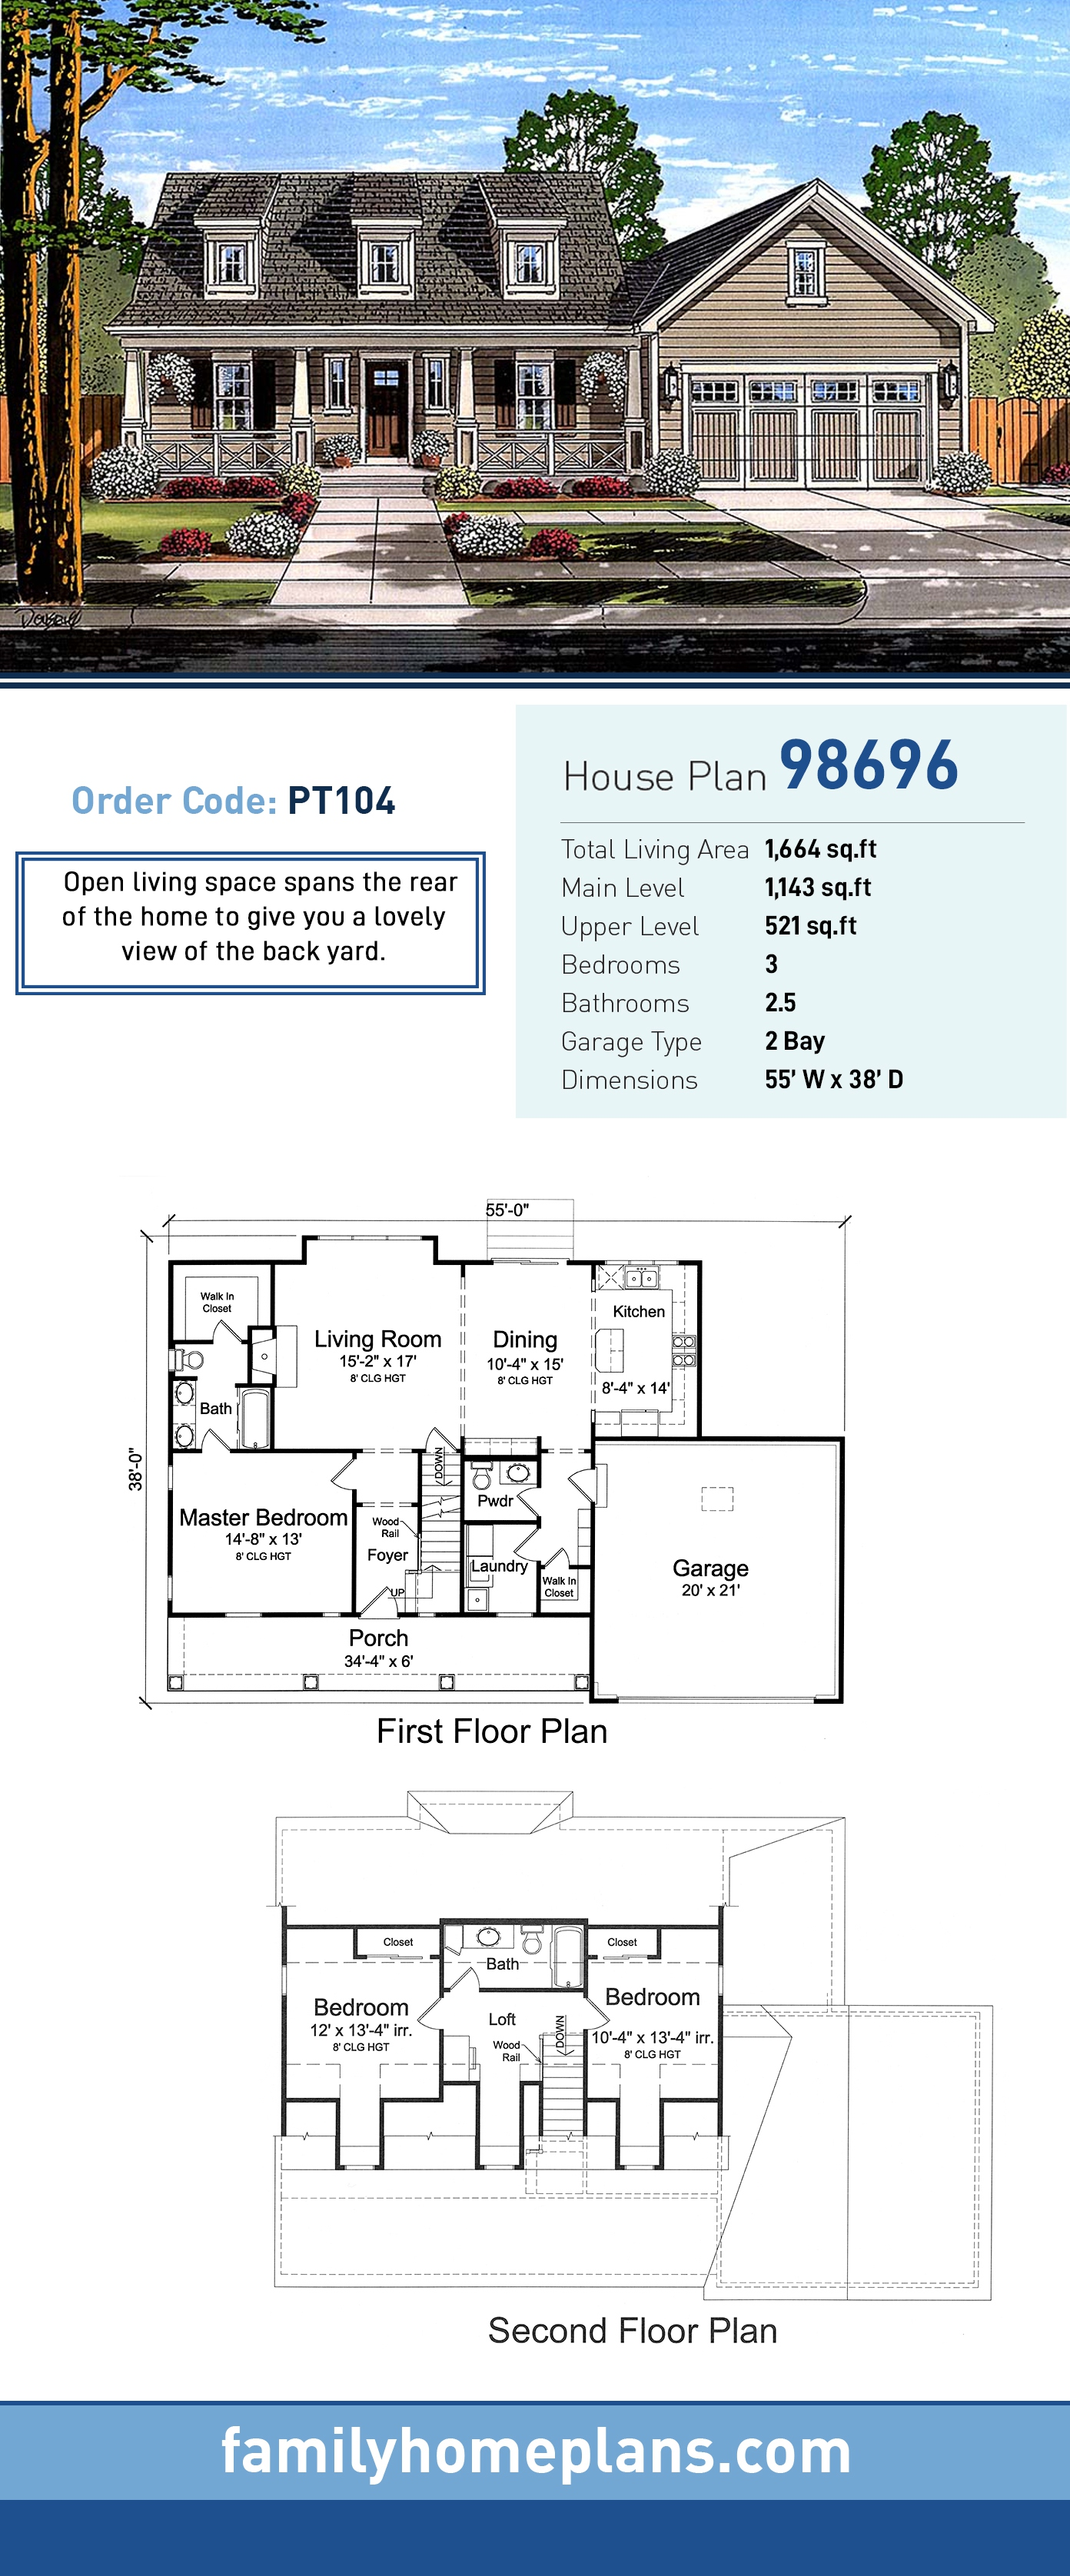 Cape Cod, Country House Plan 98696 with 3 Beds, 3 Baths, 2 Car Garage